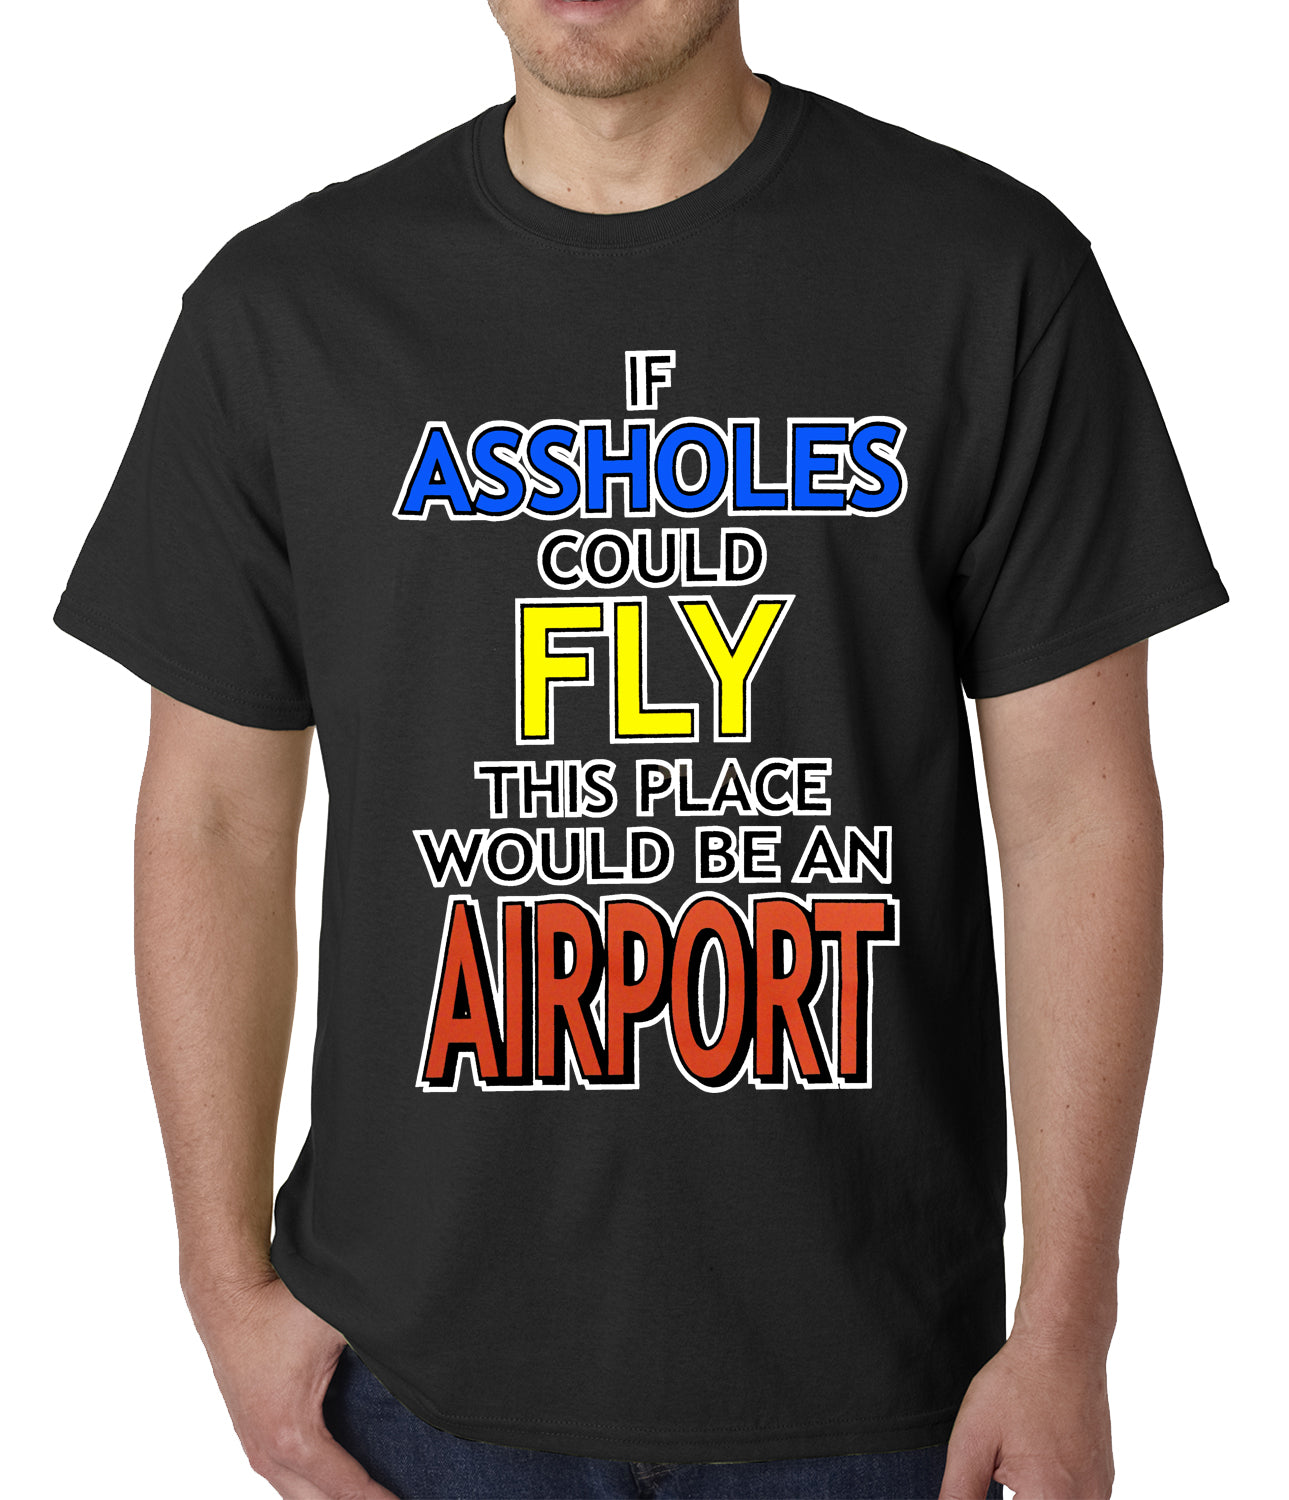 Assholes fly airport